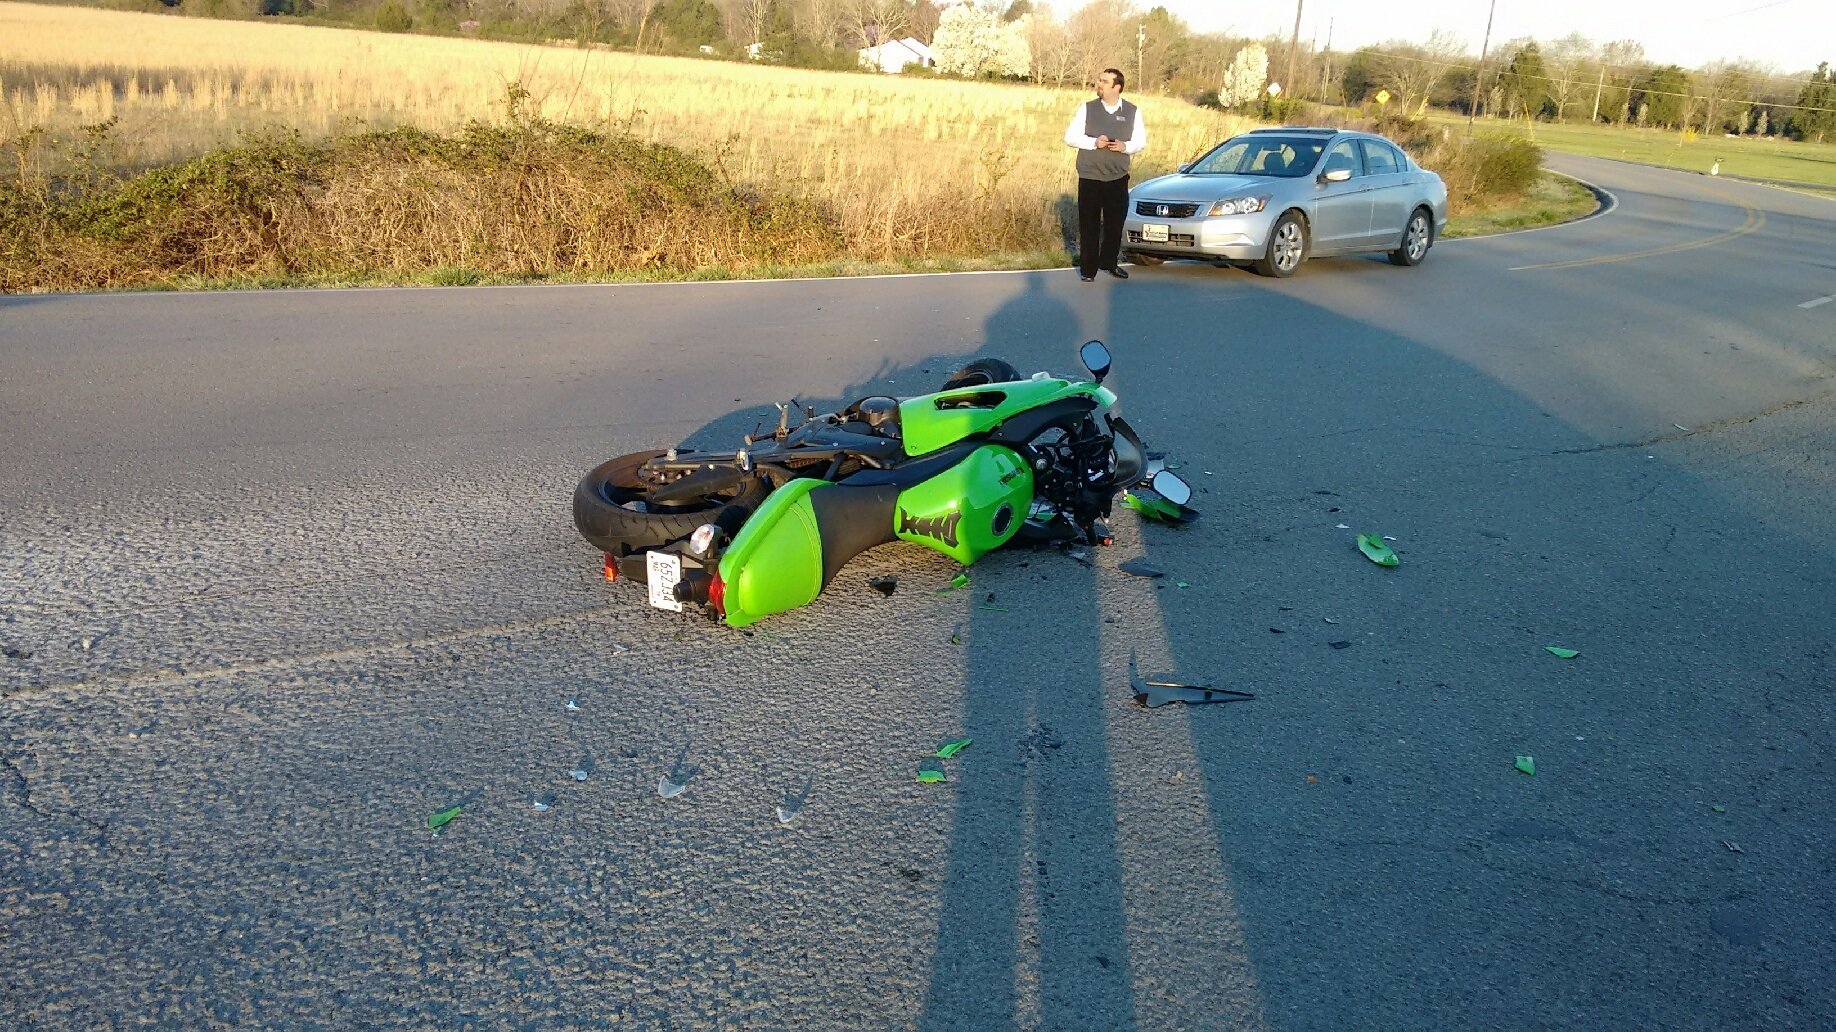 No Injuries in Tuesday Morning Motorcycle Accident